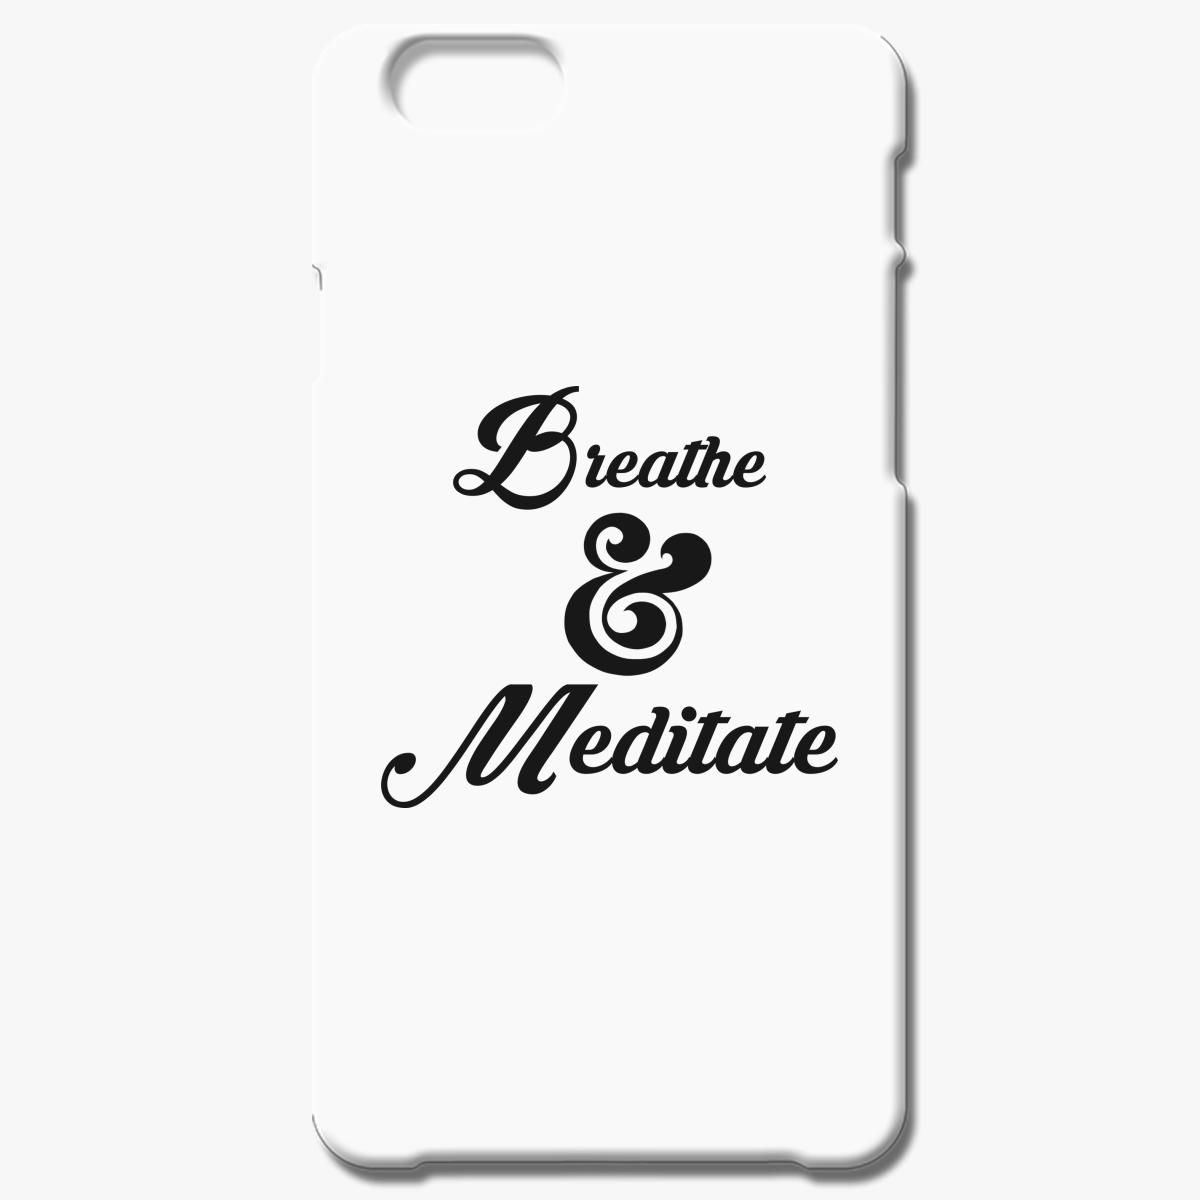 Breathe And Meditate Iphone 6 6s Case